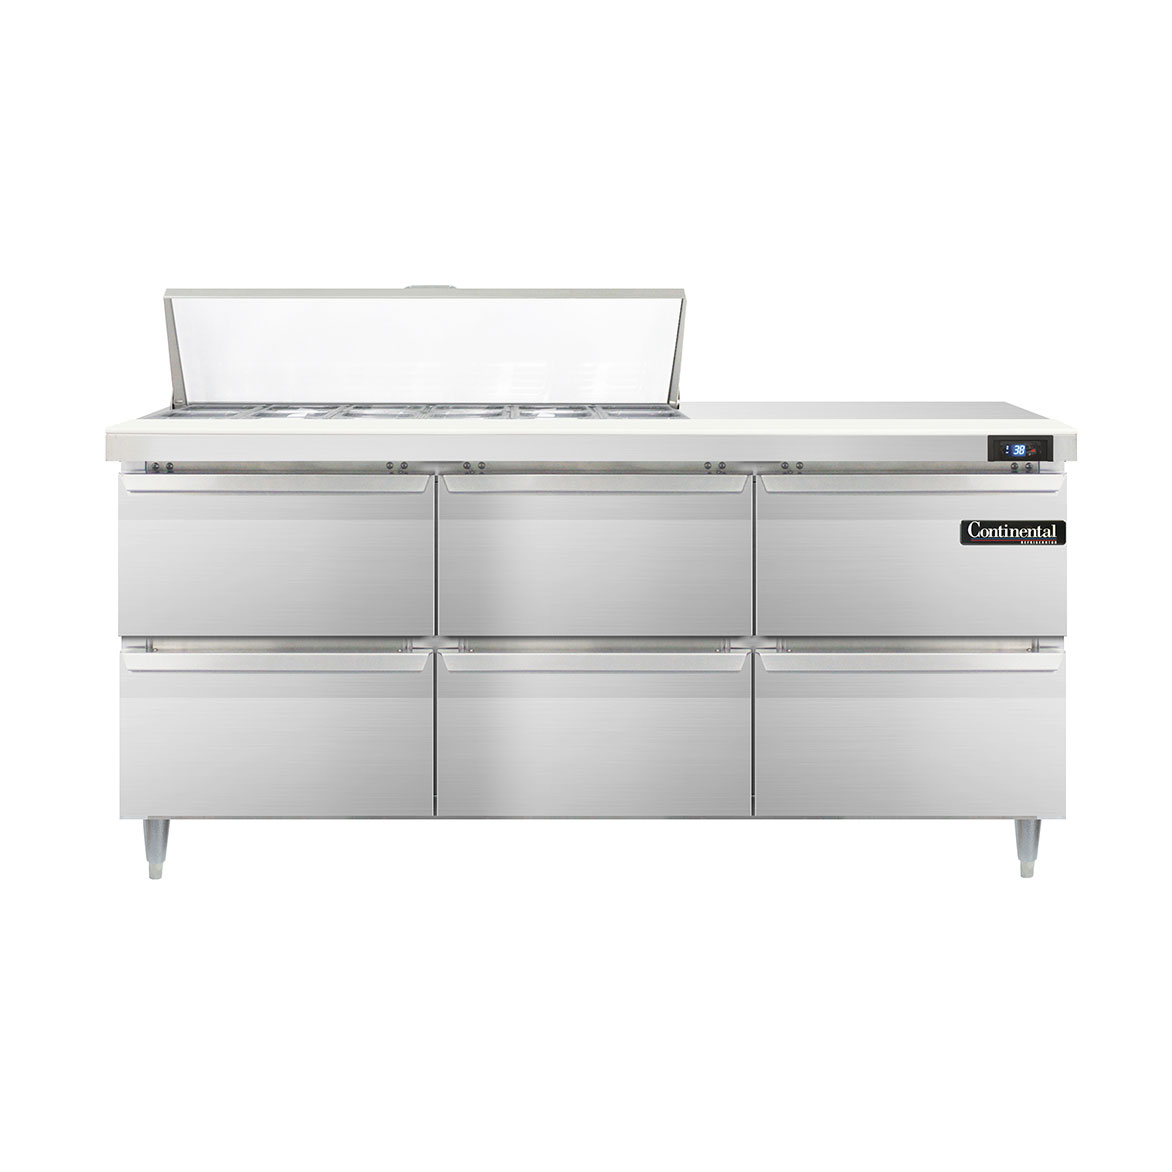 Continental Refrigerator DL72-12-D refrigerated counter, sandwich / salad unit